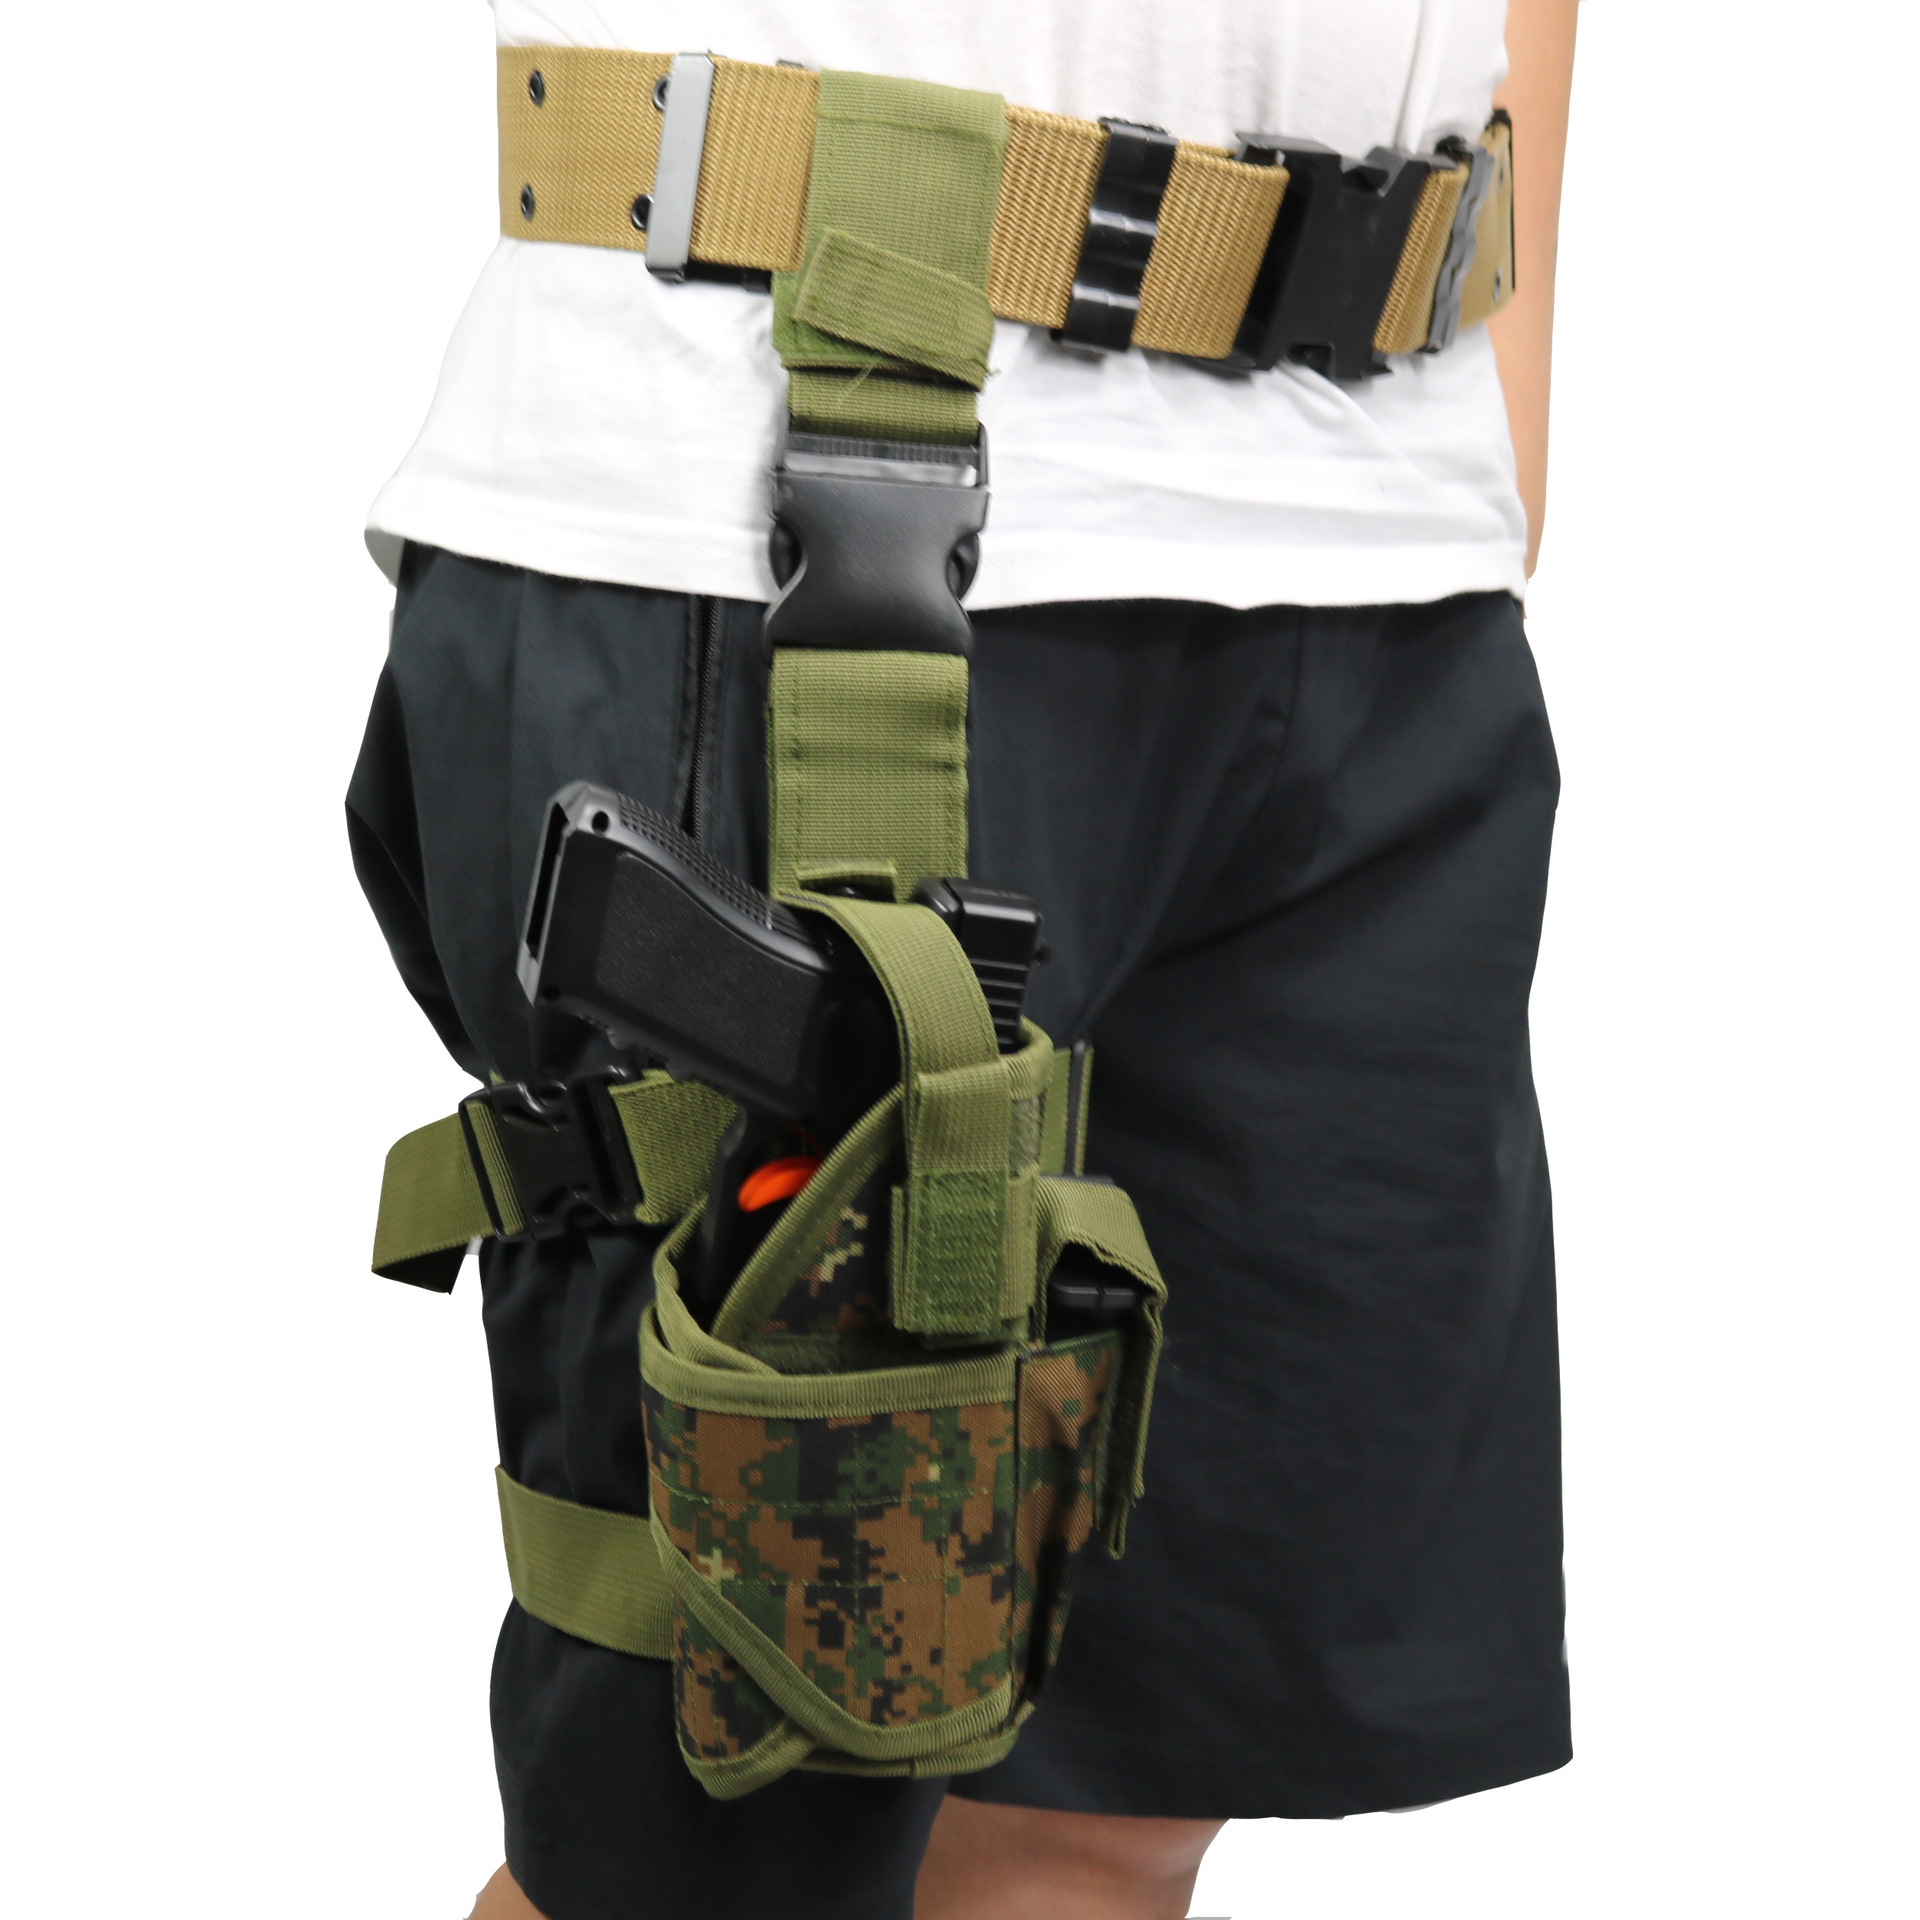 Sports Bags Hunting Bags Tactical Leggings Set Right Drop Leg Army Pistol Gun Thigh Holster Pouch Holder For Glock Outdoor Hunting Accessory Bag Military Lustrous Surface